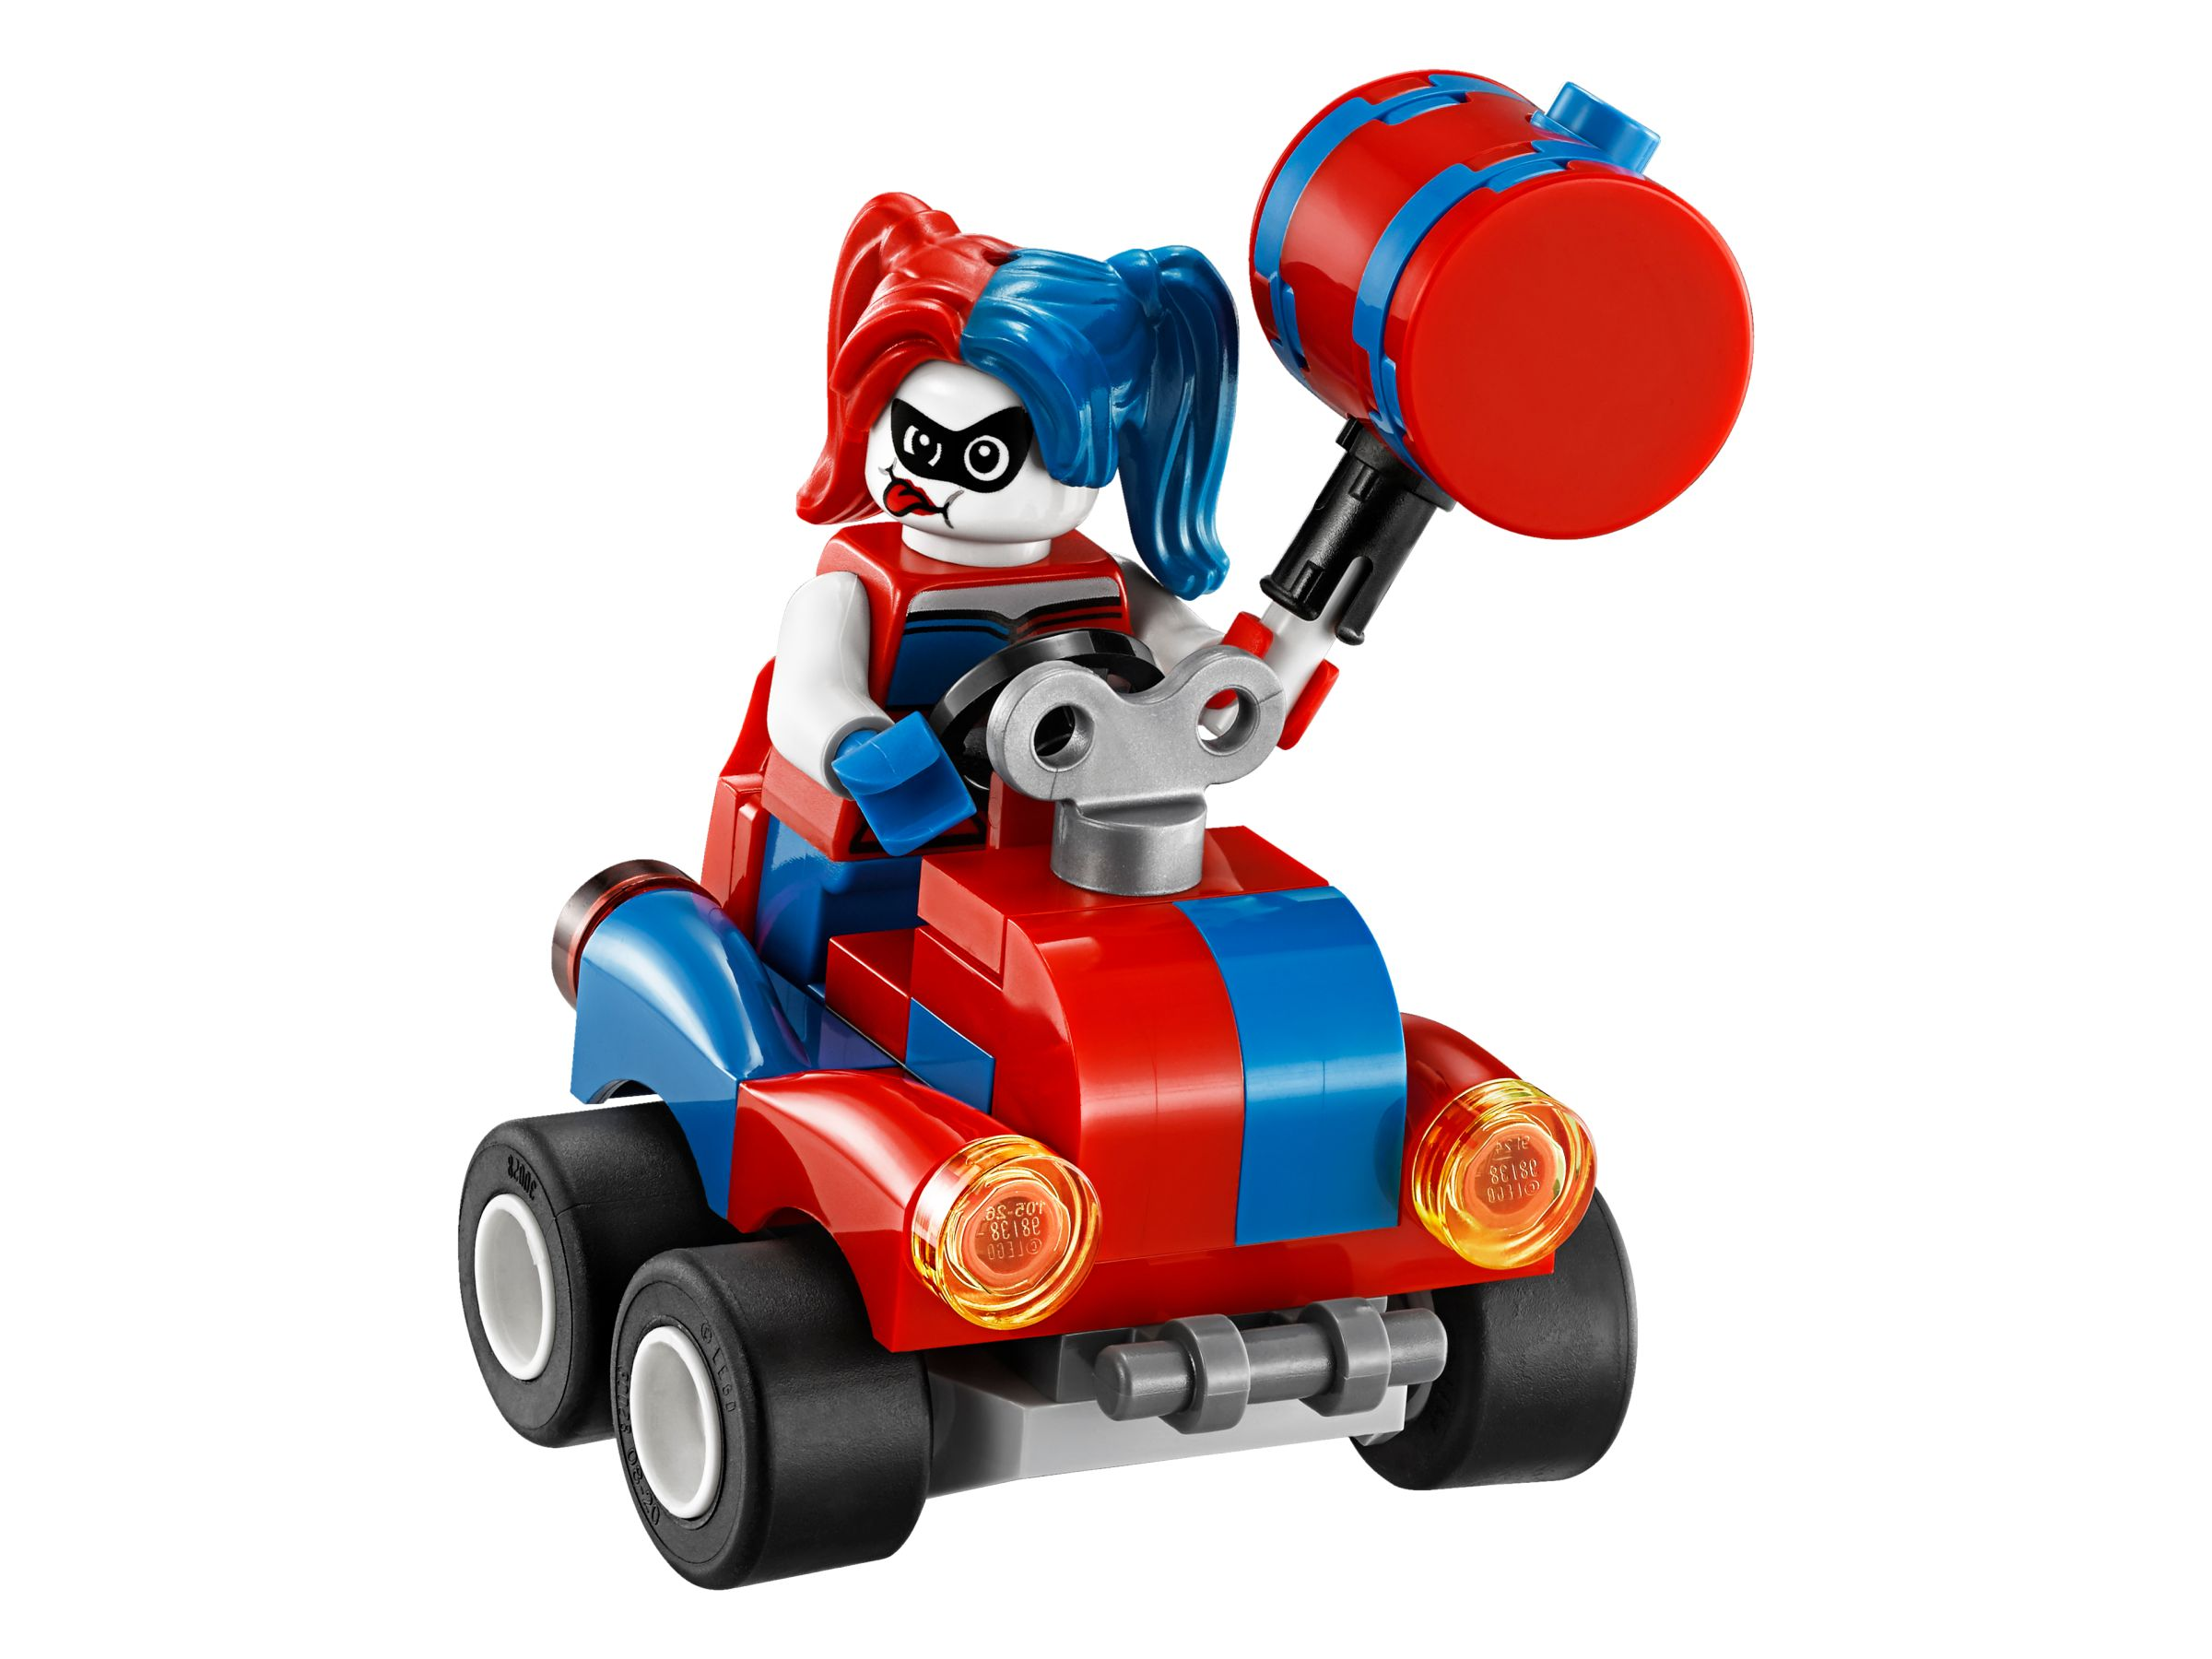 LEGO Super Heroes 76092 Mighty Micros: Batman vs. Harley Quinn LEGO_76092_alt4.jpg